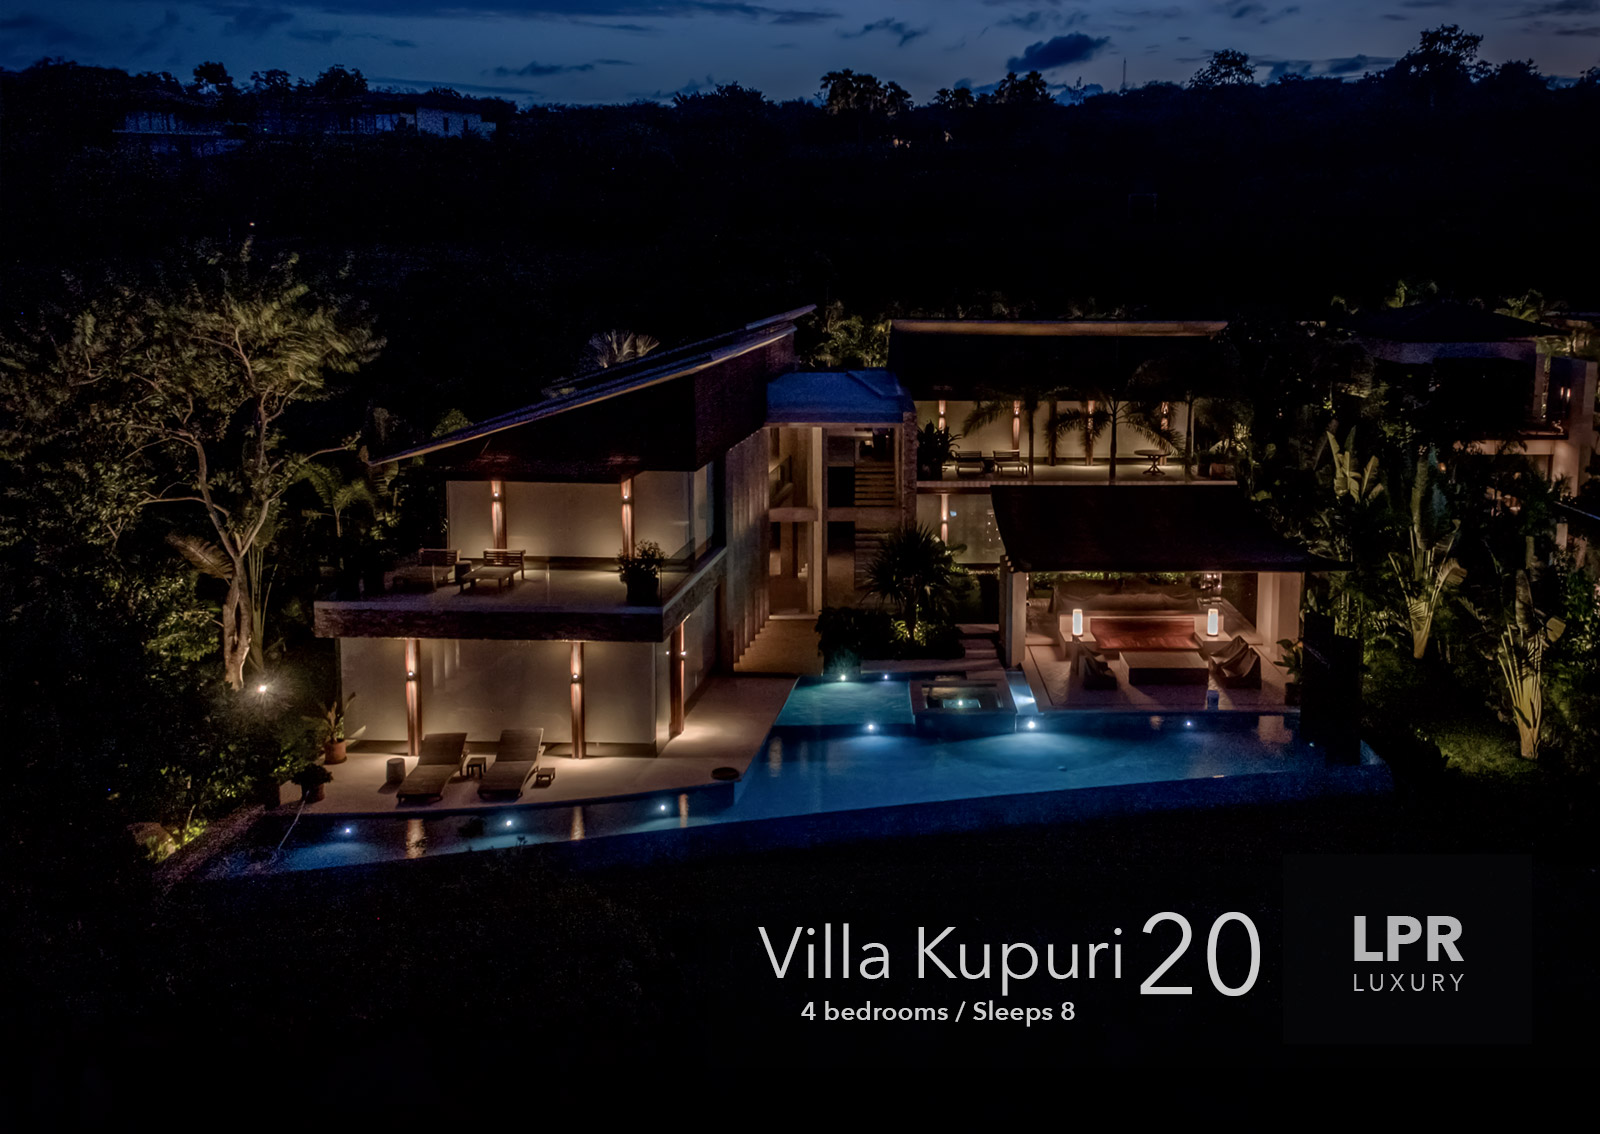 Villa Kupuri 20 - Ultra luxury vacation rental villa at the Punta Mita Resort, Riviera Nayarit, Mexico